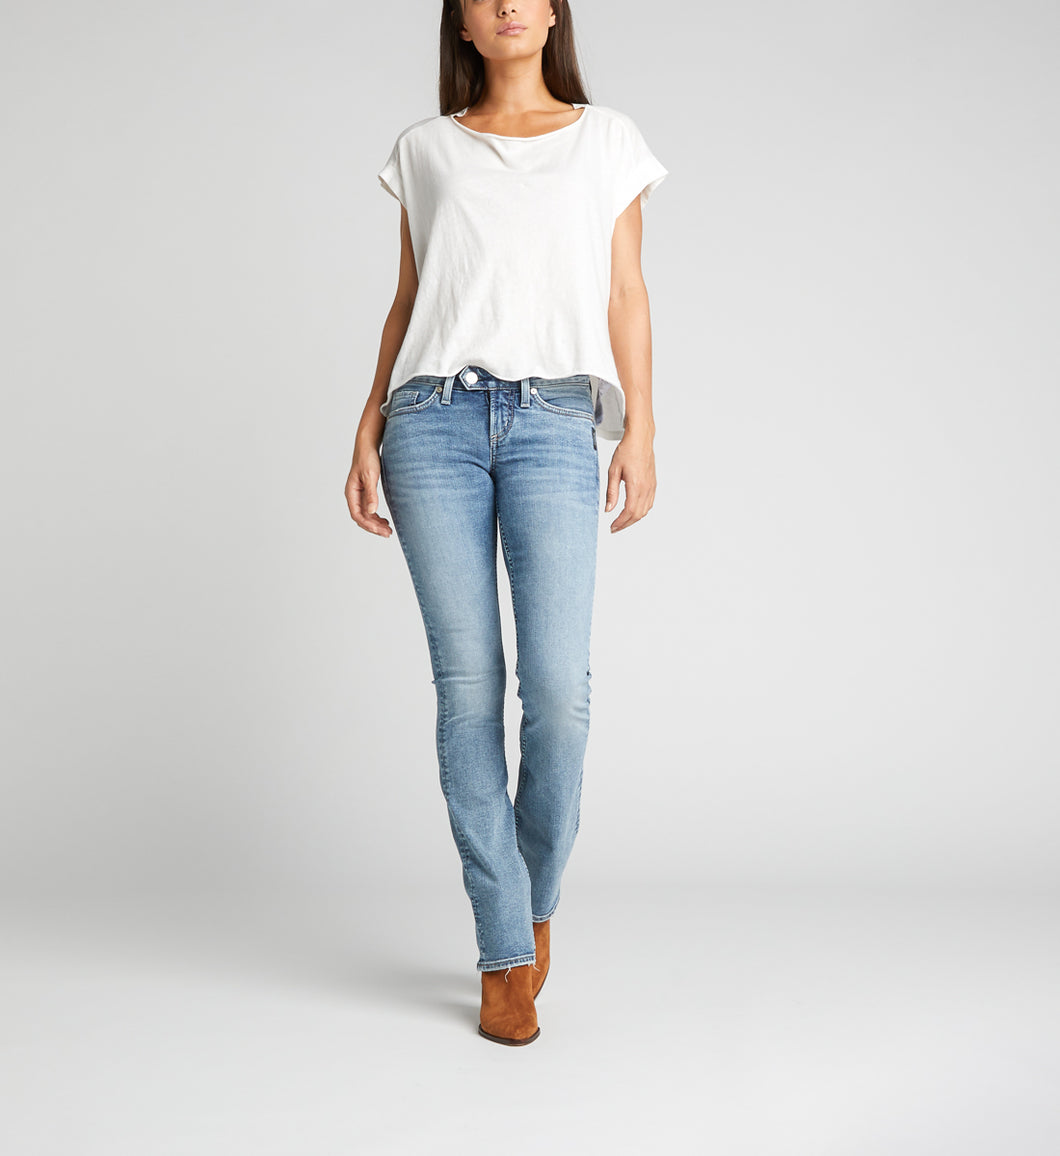 WOMEN'S SILVER TUESDAY LOW RISE SLIM BOOTCUT JEANS